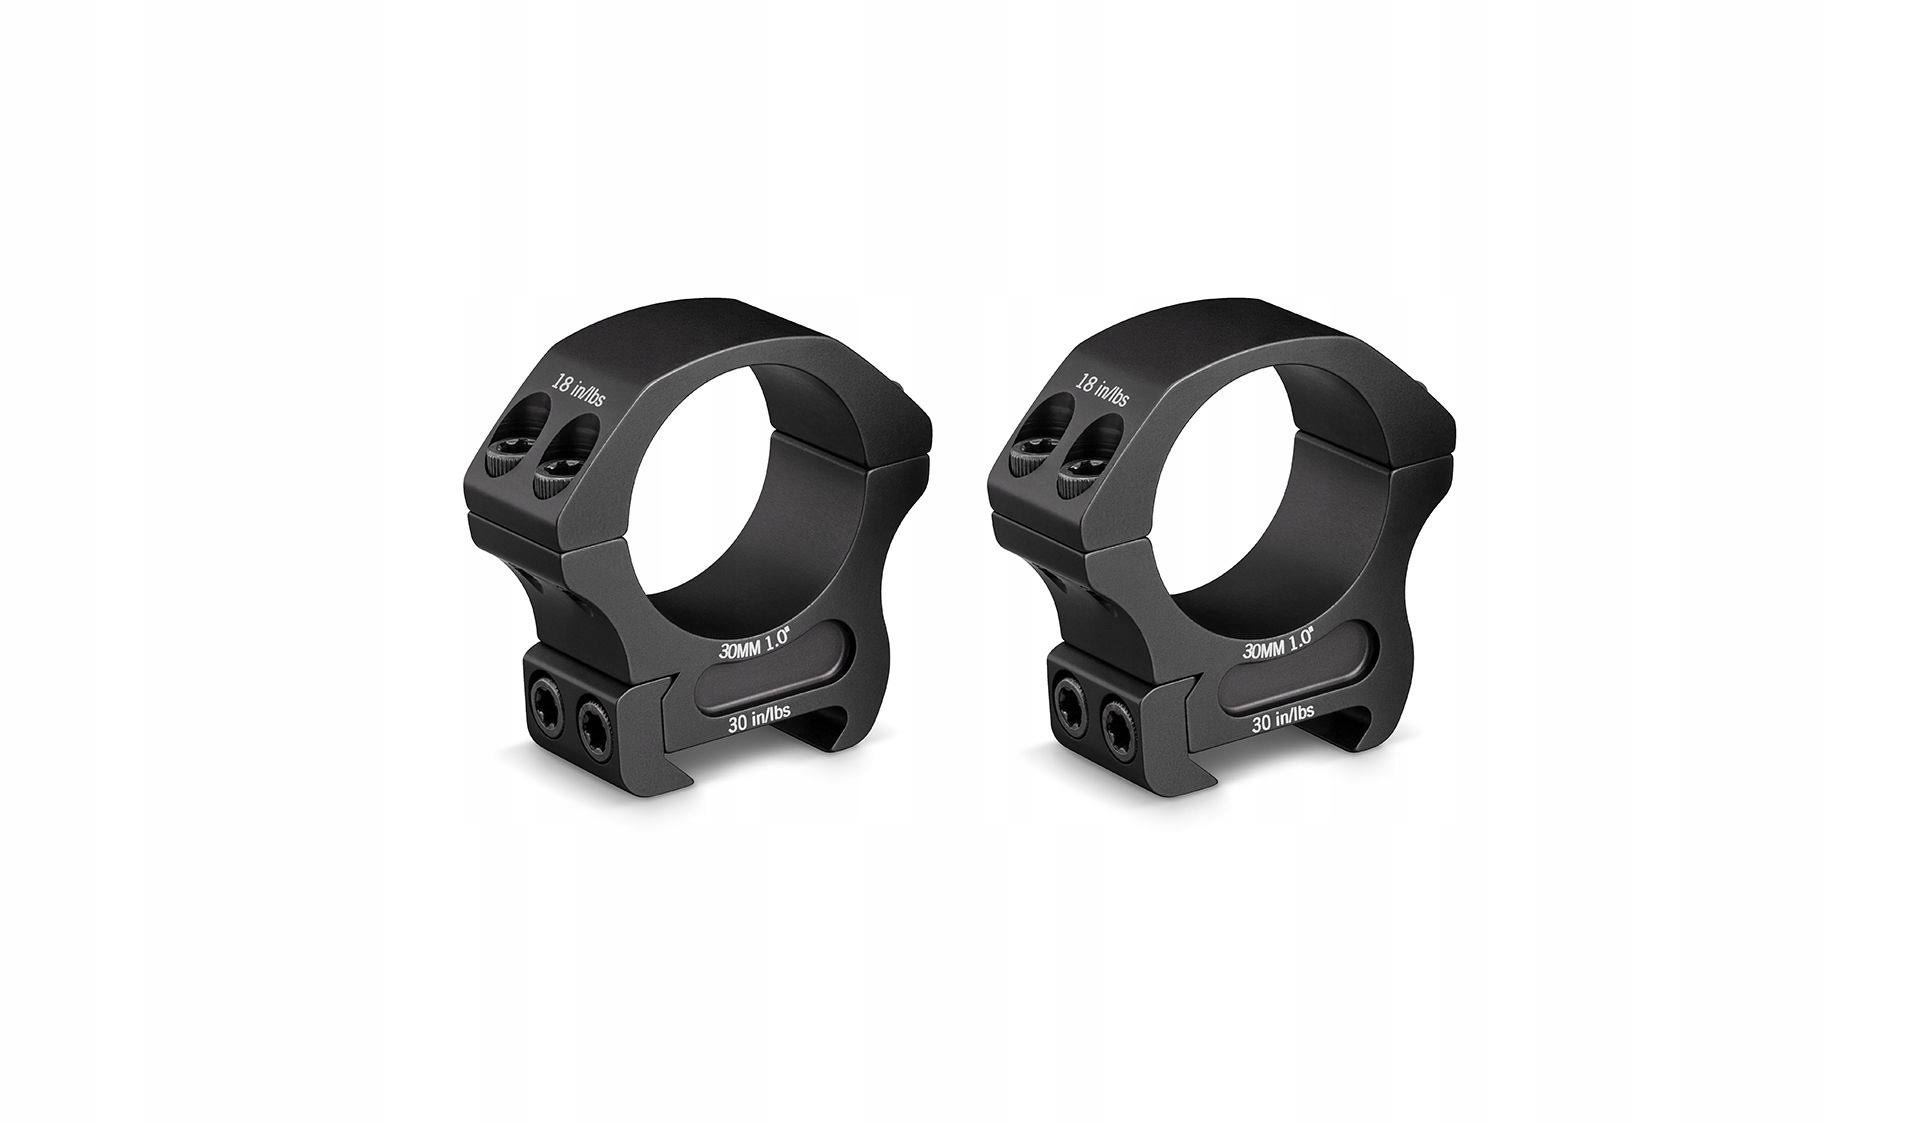 Vortex Optics PR30M Riflescope Rings - Black, 30mm